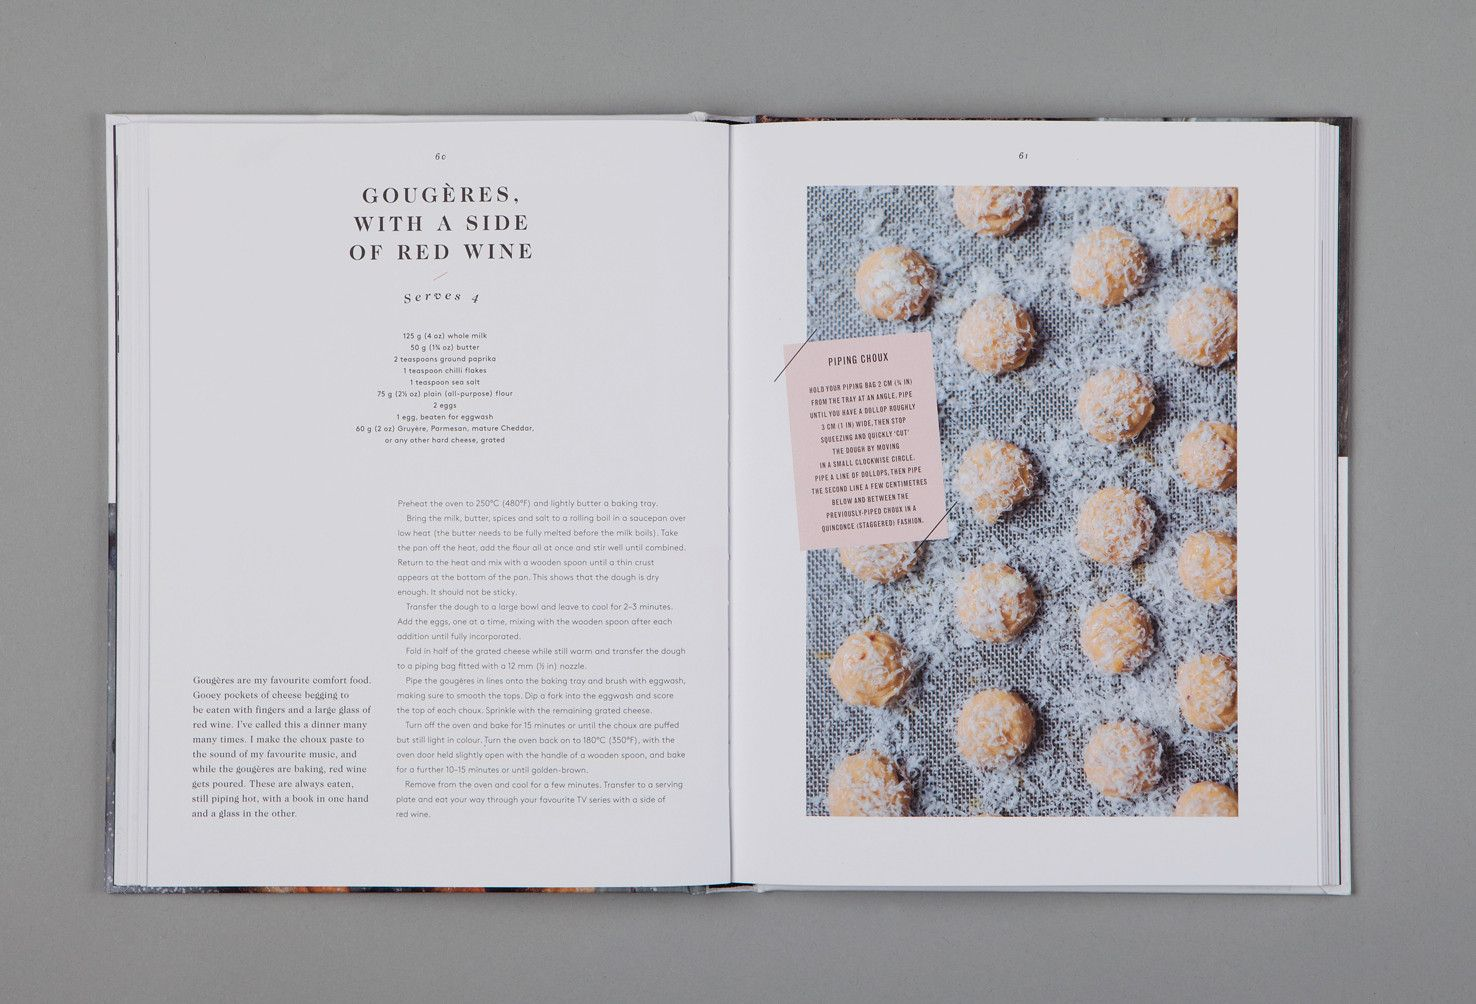 Piping Layout Design Book Wiring Library And Paris Pastry Club Hardie Grant Charlotte Heal